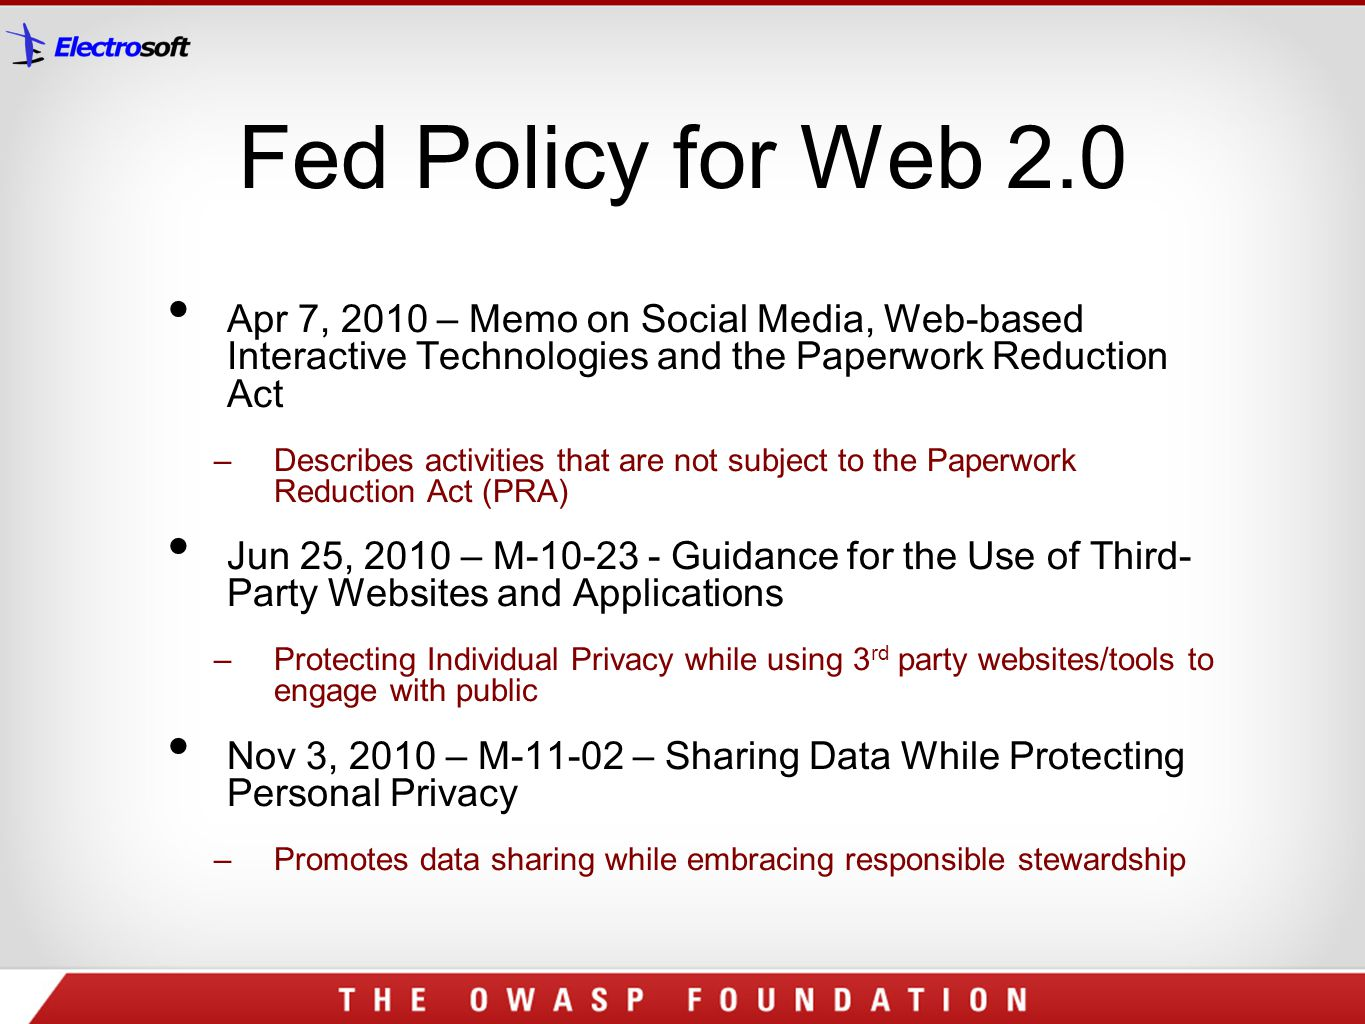 Fed Policy for Web 2.0 Apr 7, 2010 – Memo on Social Media, Web-based Interactive Technologies and the Paperwork Reduction Act.